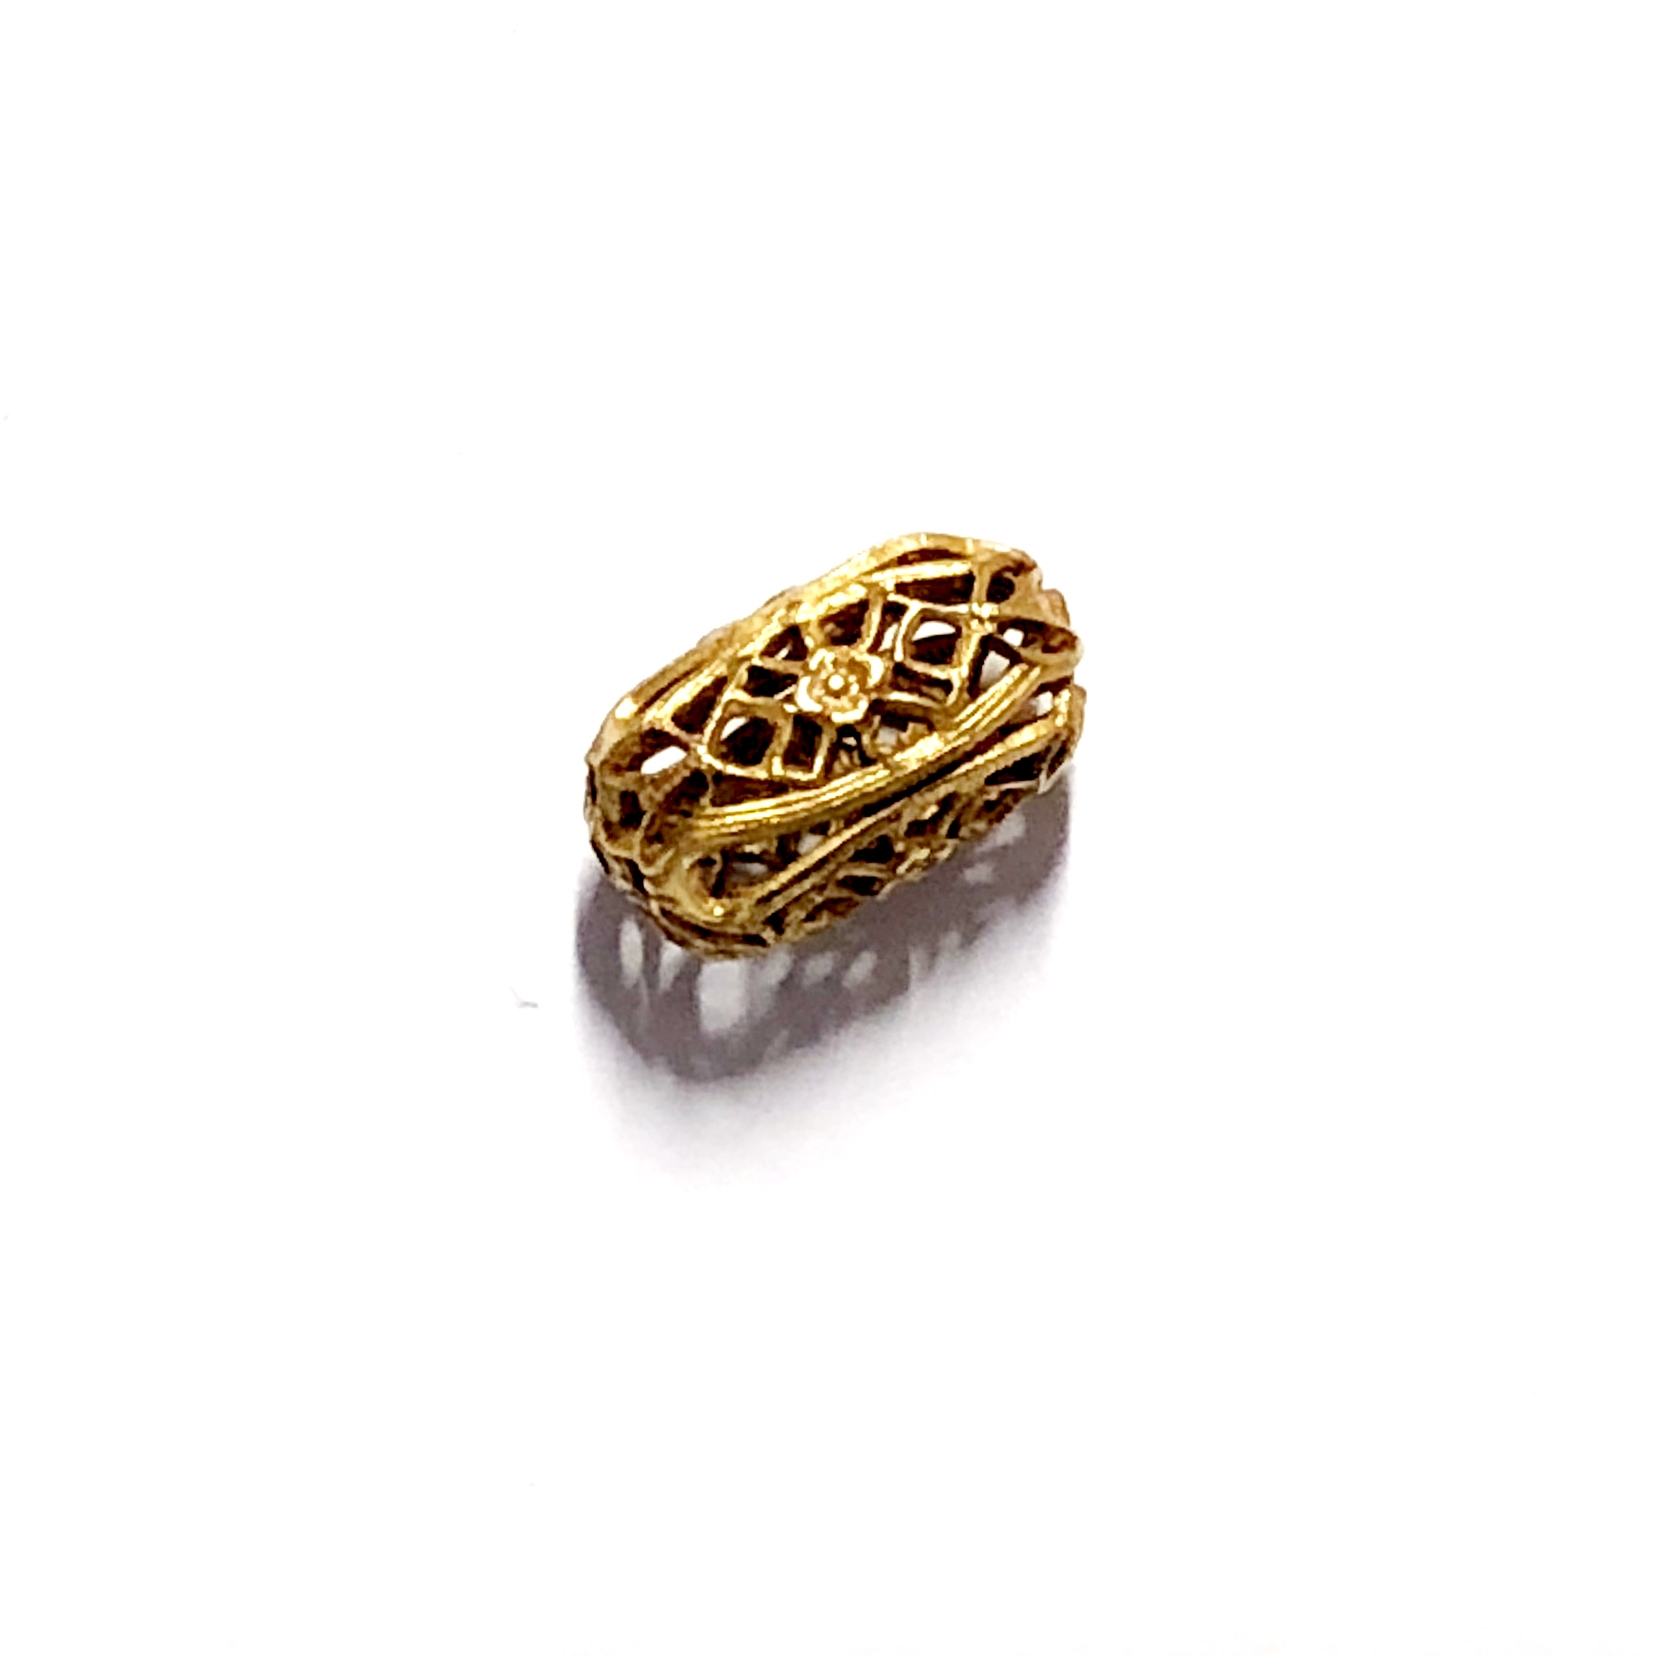 brass beads, filigree beads, jewelry making, 08455, brass bead, filigree beads, antique gold, classic gold, cinnamon accenting,barrel beads, designer findings, designer beads, steampunk art jewelry, beading supplies, vintage jewelry supplies